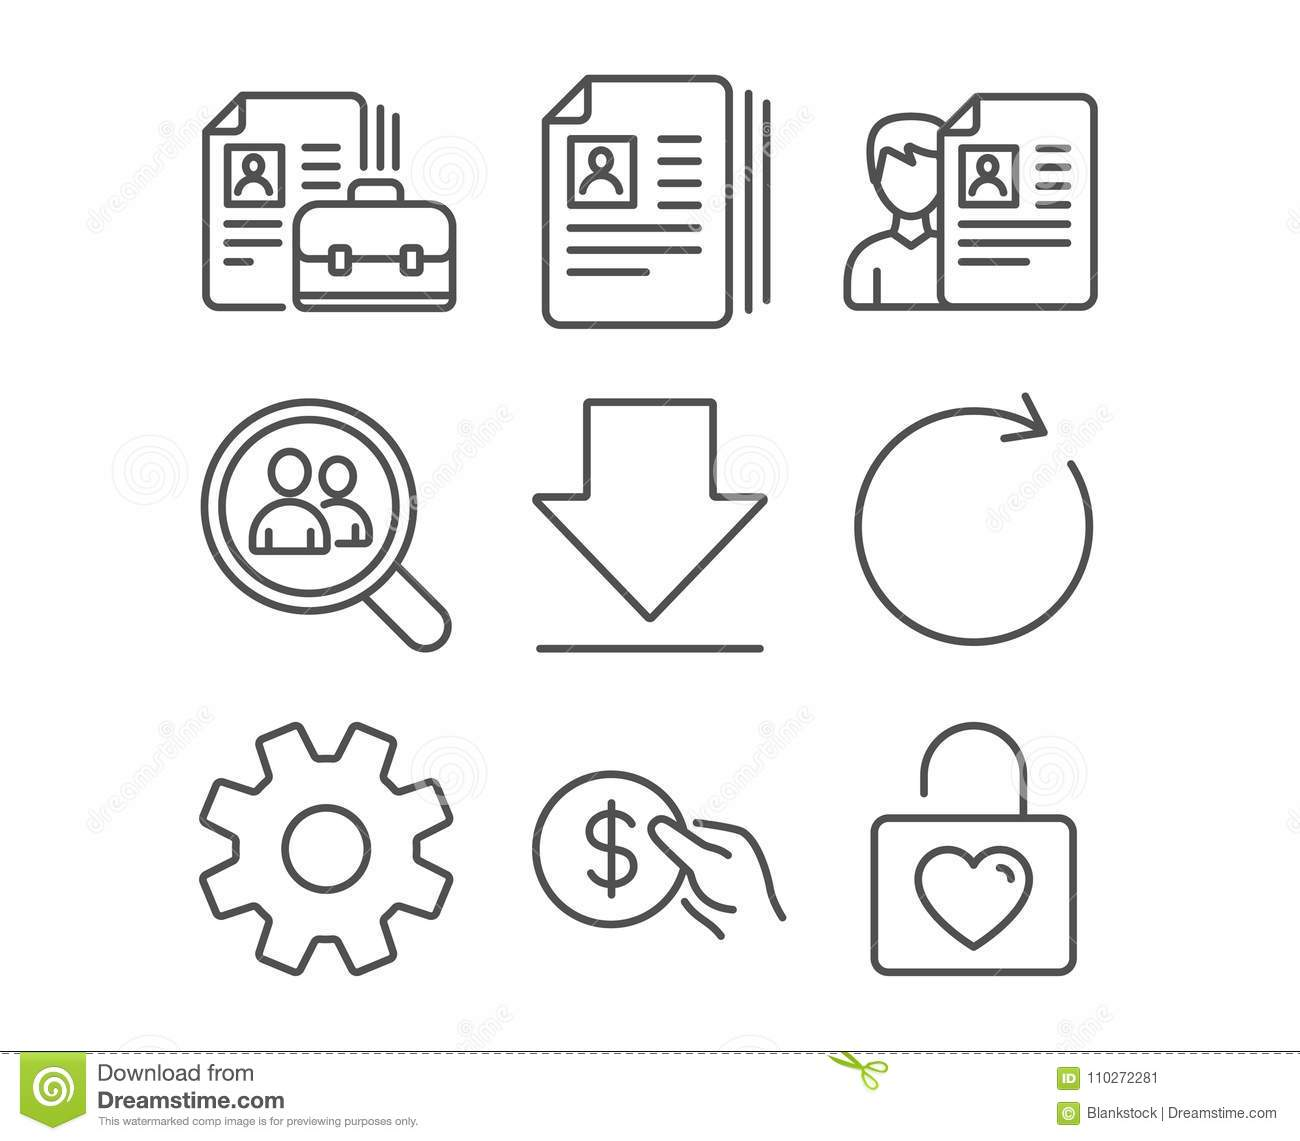 download service synchronize and payment icons cv documents downloading and vacancy signs